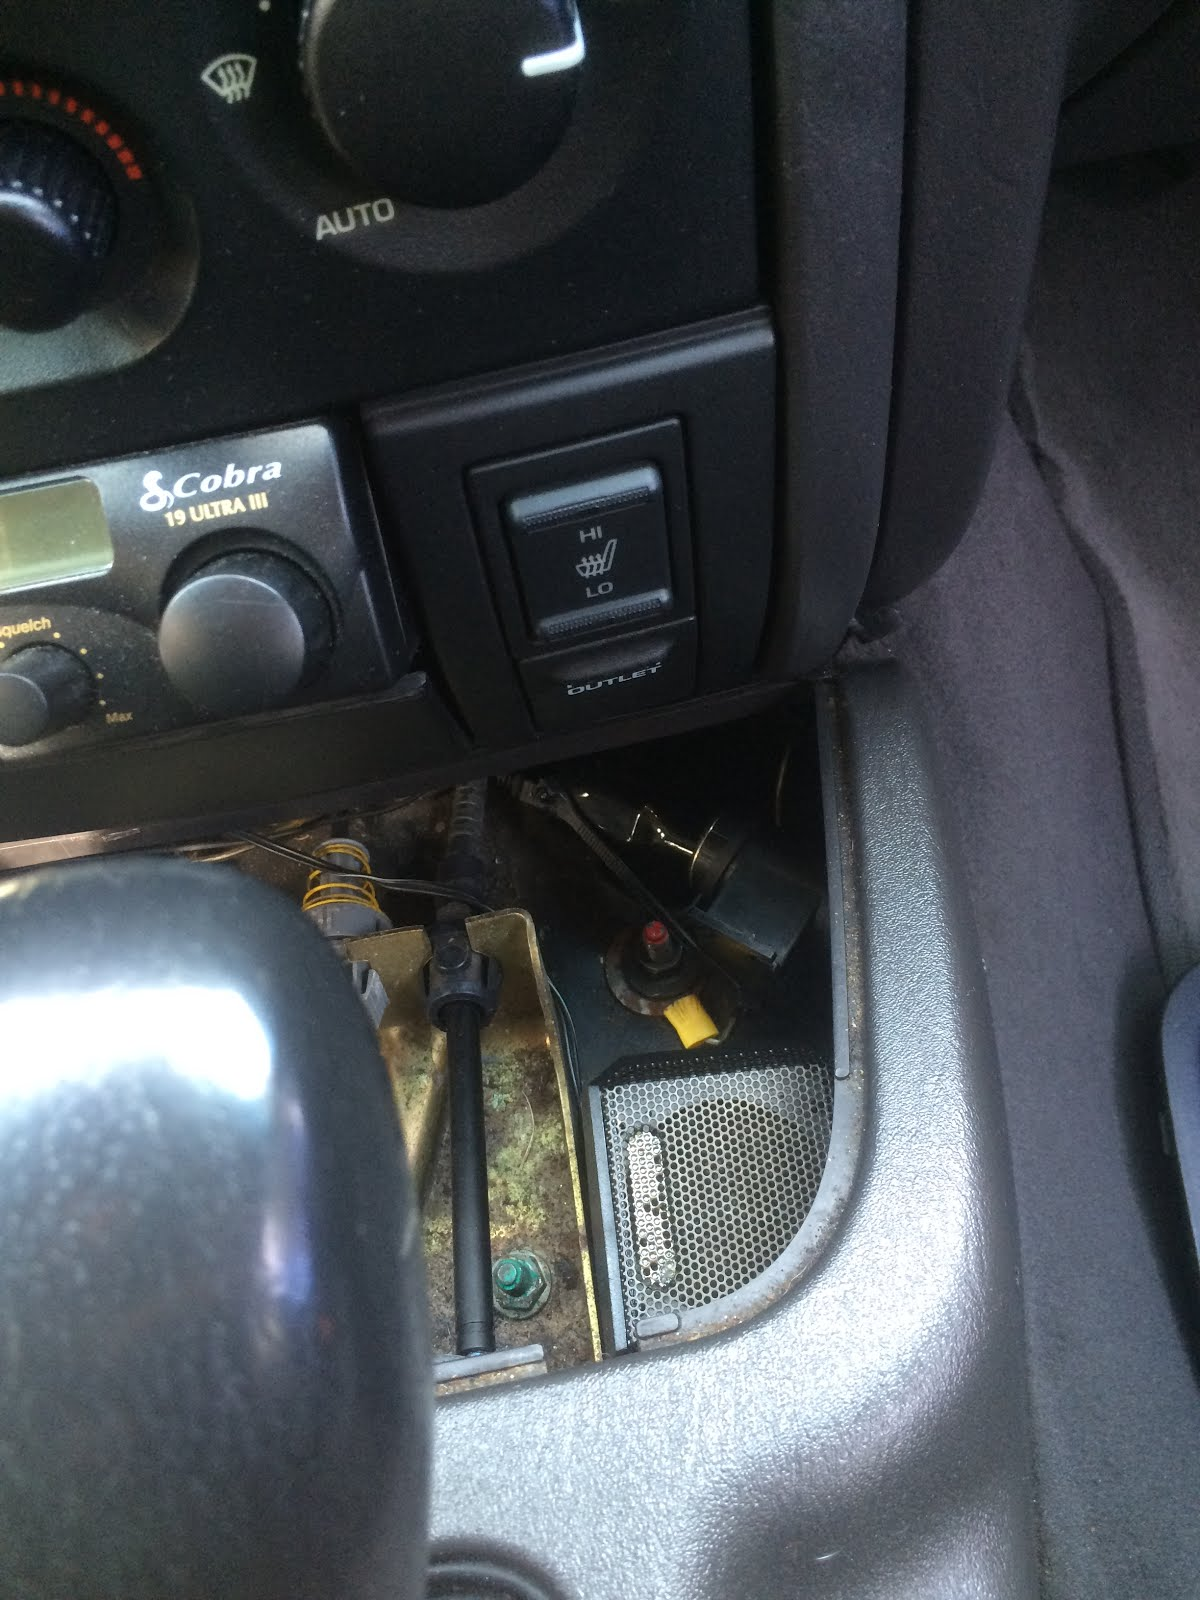 Jeep Stuff Aux In Bluetooth For Factory Radio Or Rb1 Wj Chrysler Wiring Diagram Totally Optionalbut This Way There Are No Wires Showing Again Zipties Your Friend And Yes Thats My Cb External Speaker